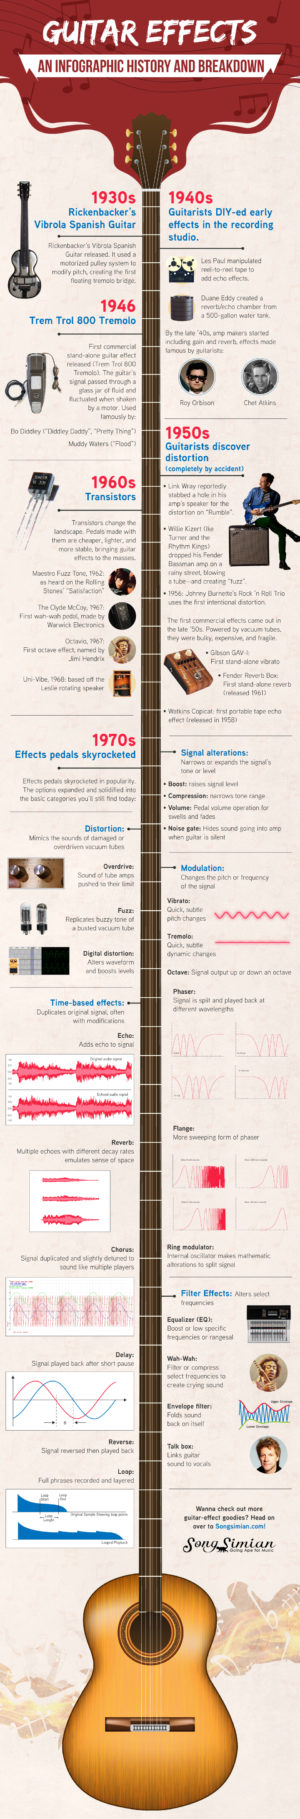 Guitar Effects Infographic History